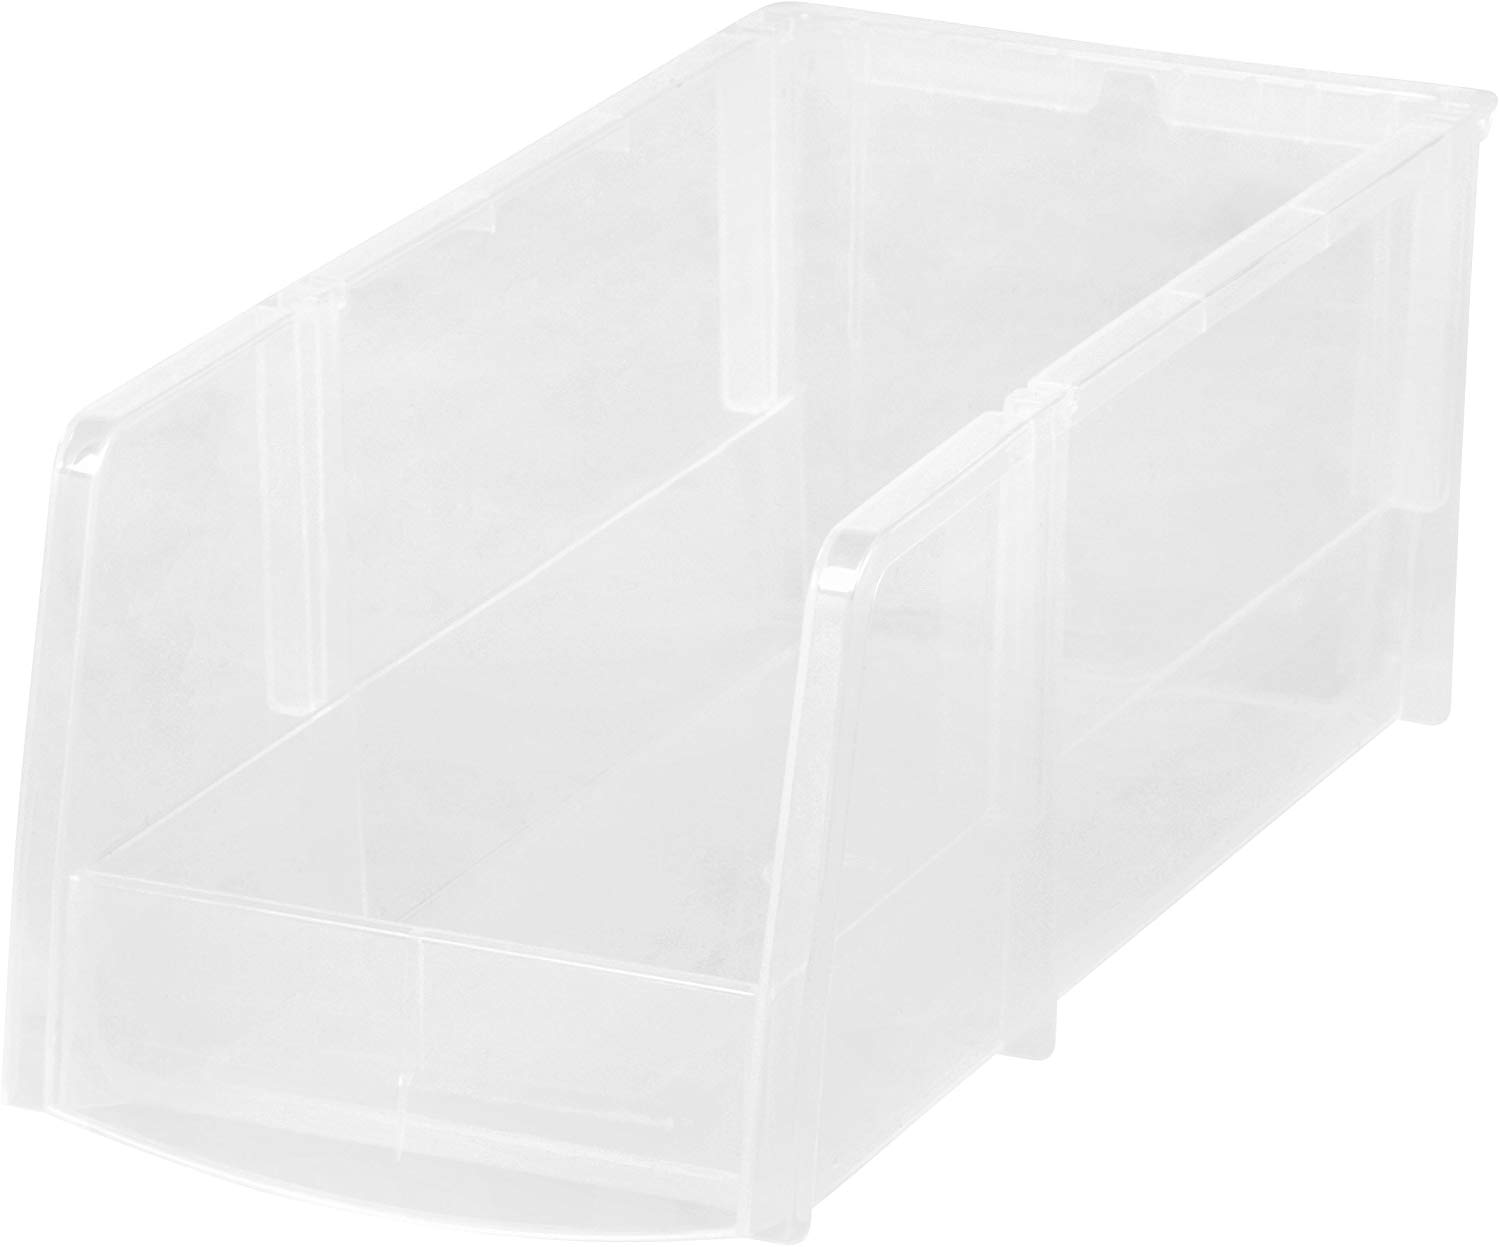 6 Inch x 13 Inch IP Clear Stacking Bin